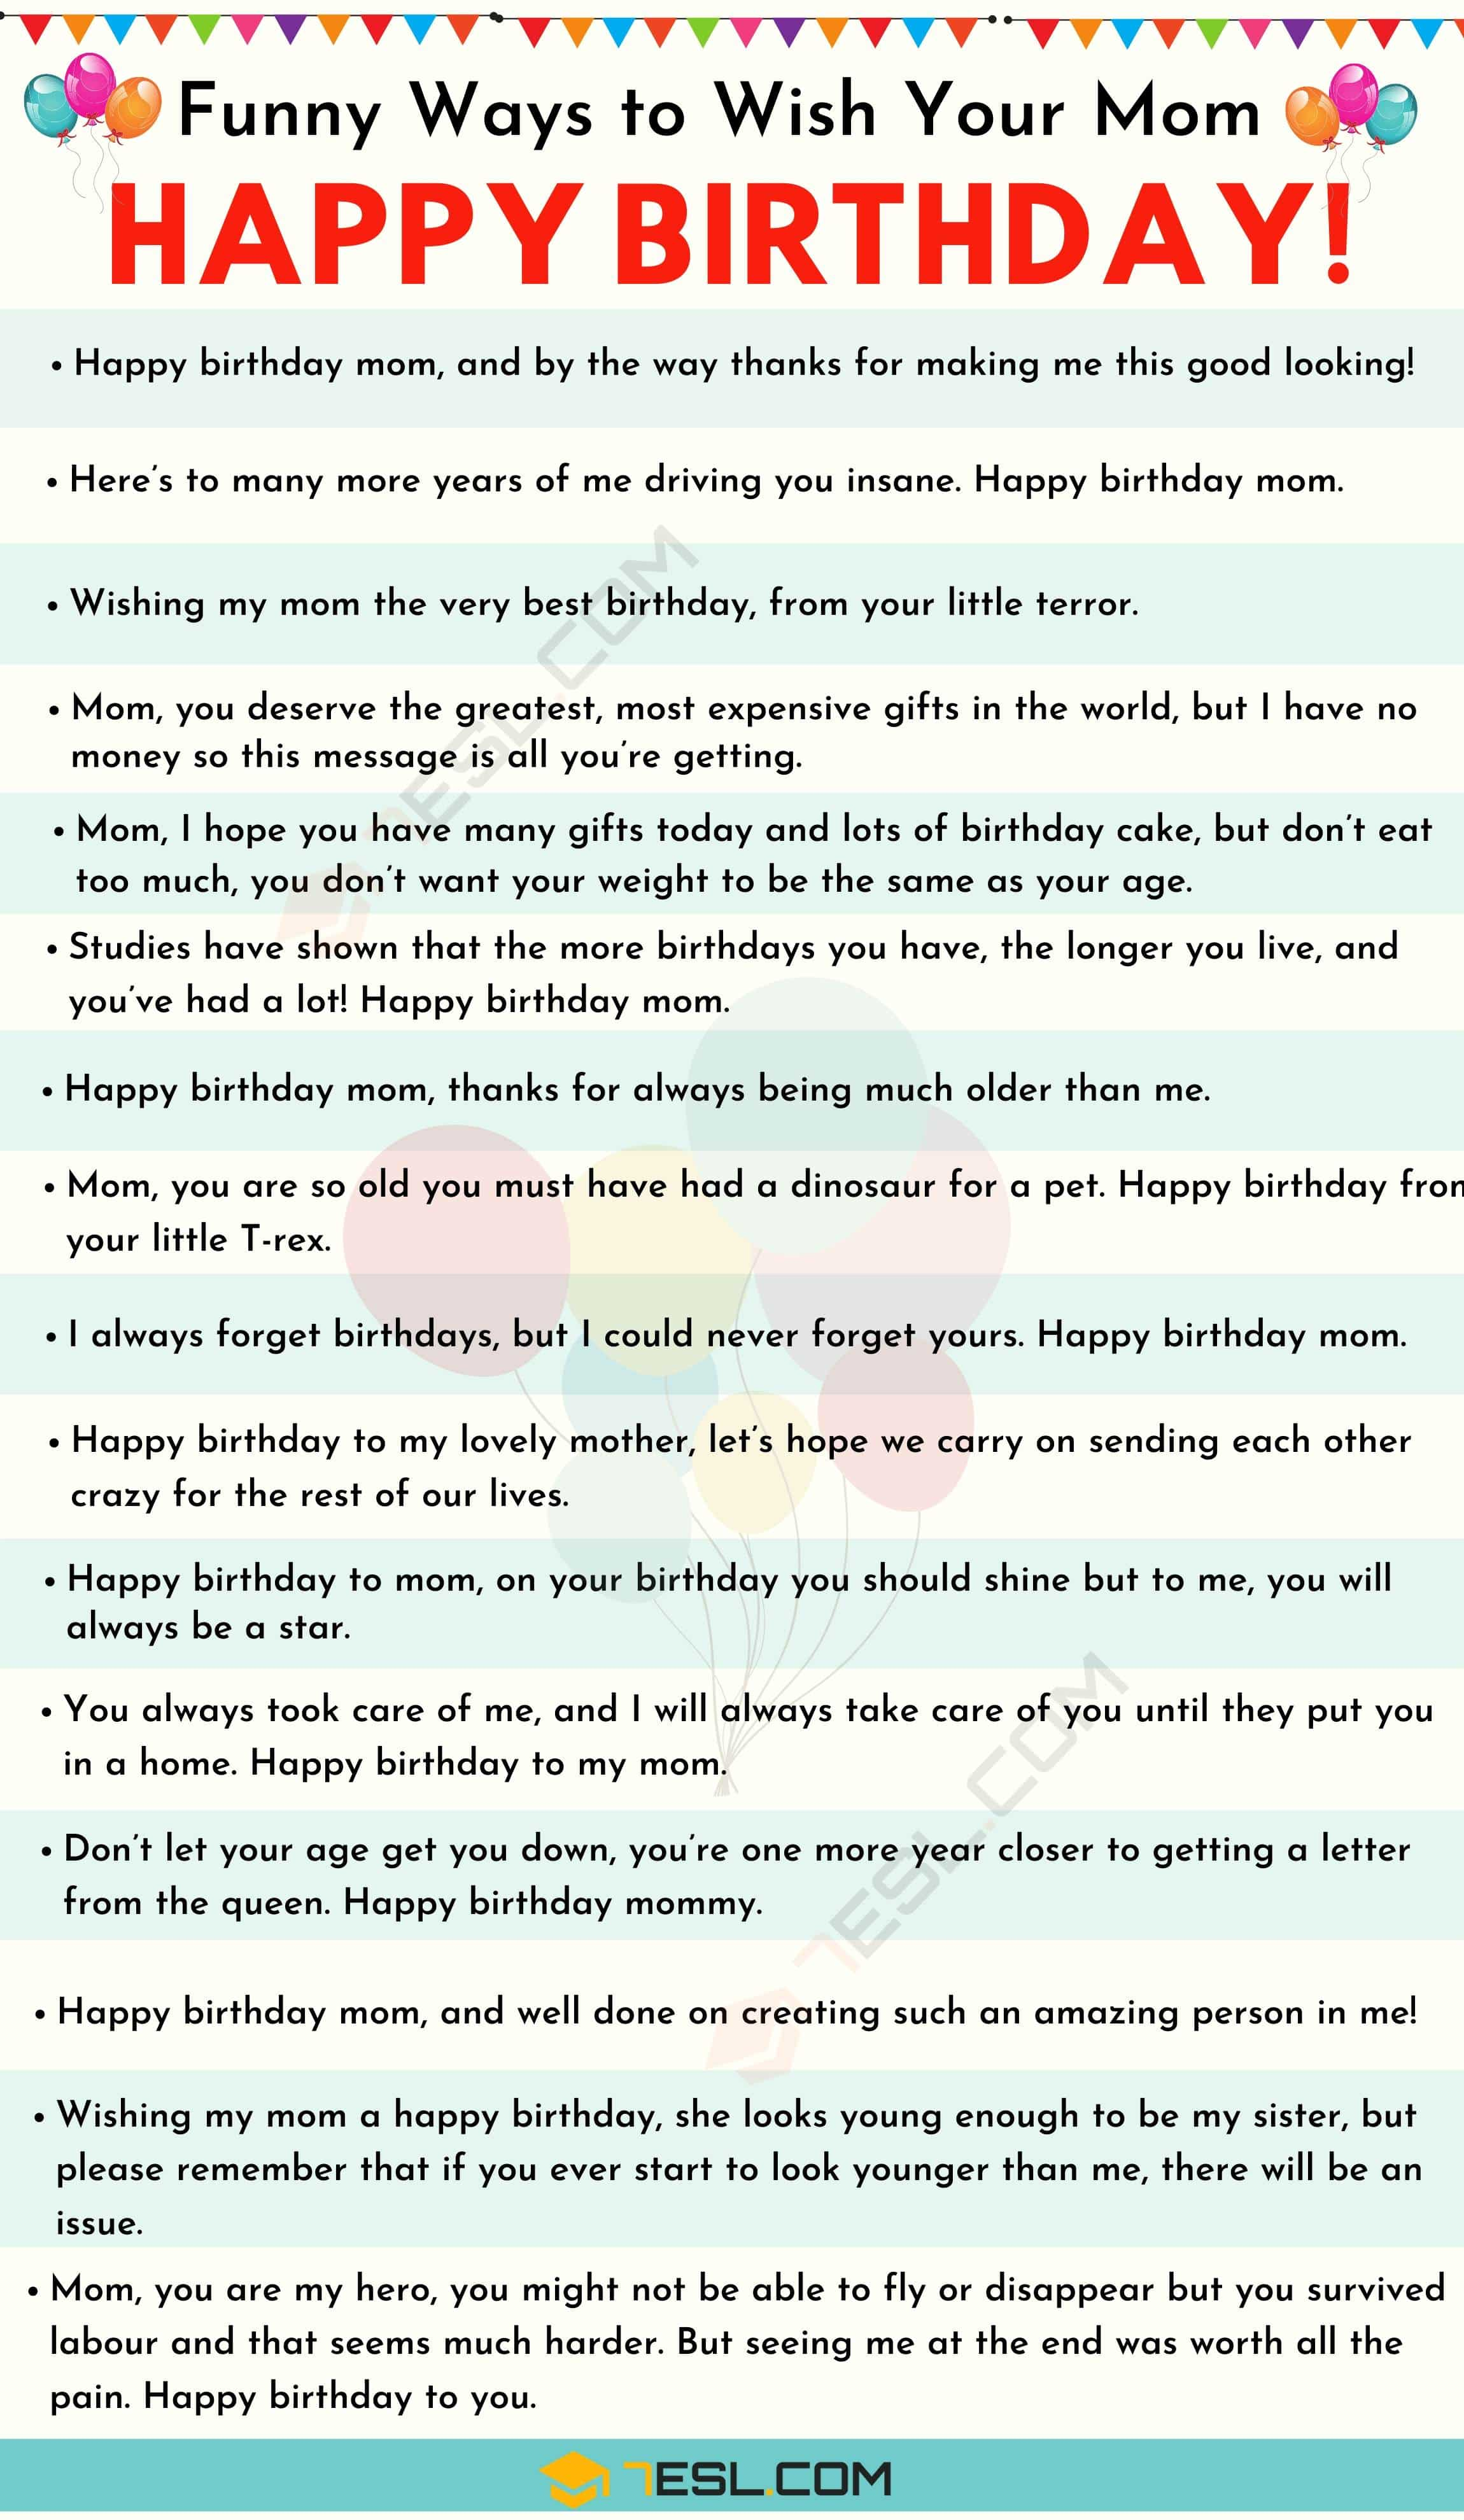 Happy birthday Mom: 35+ Sweet and Funny Birthday Wishes for Mom